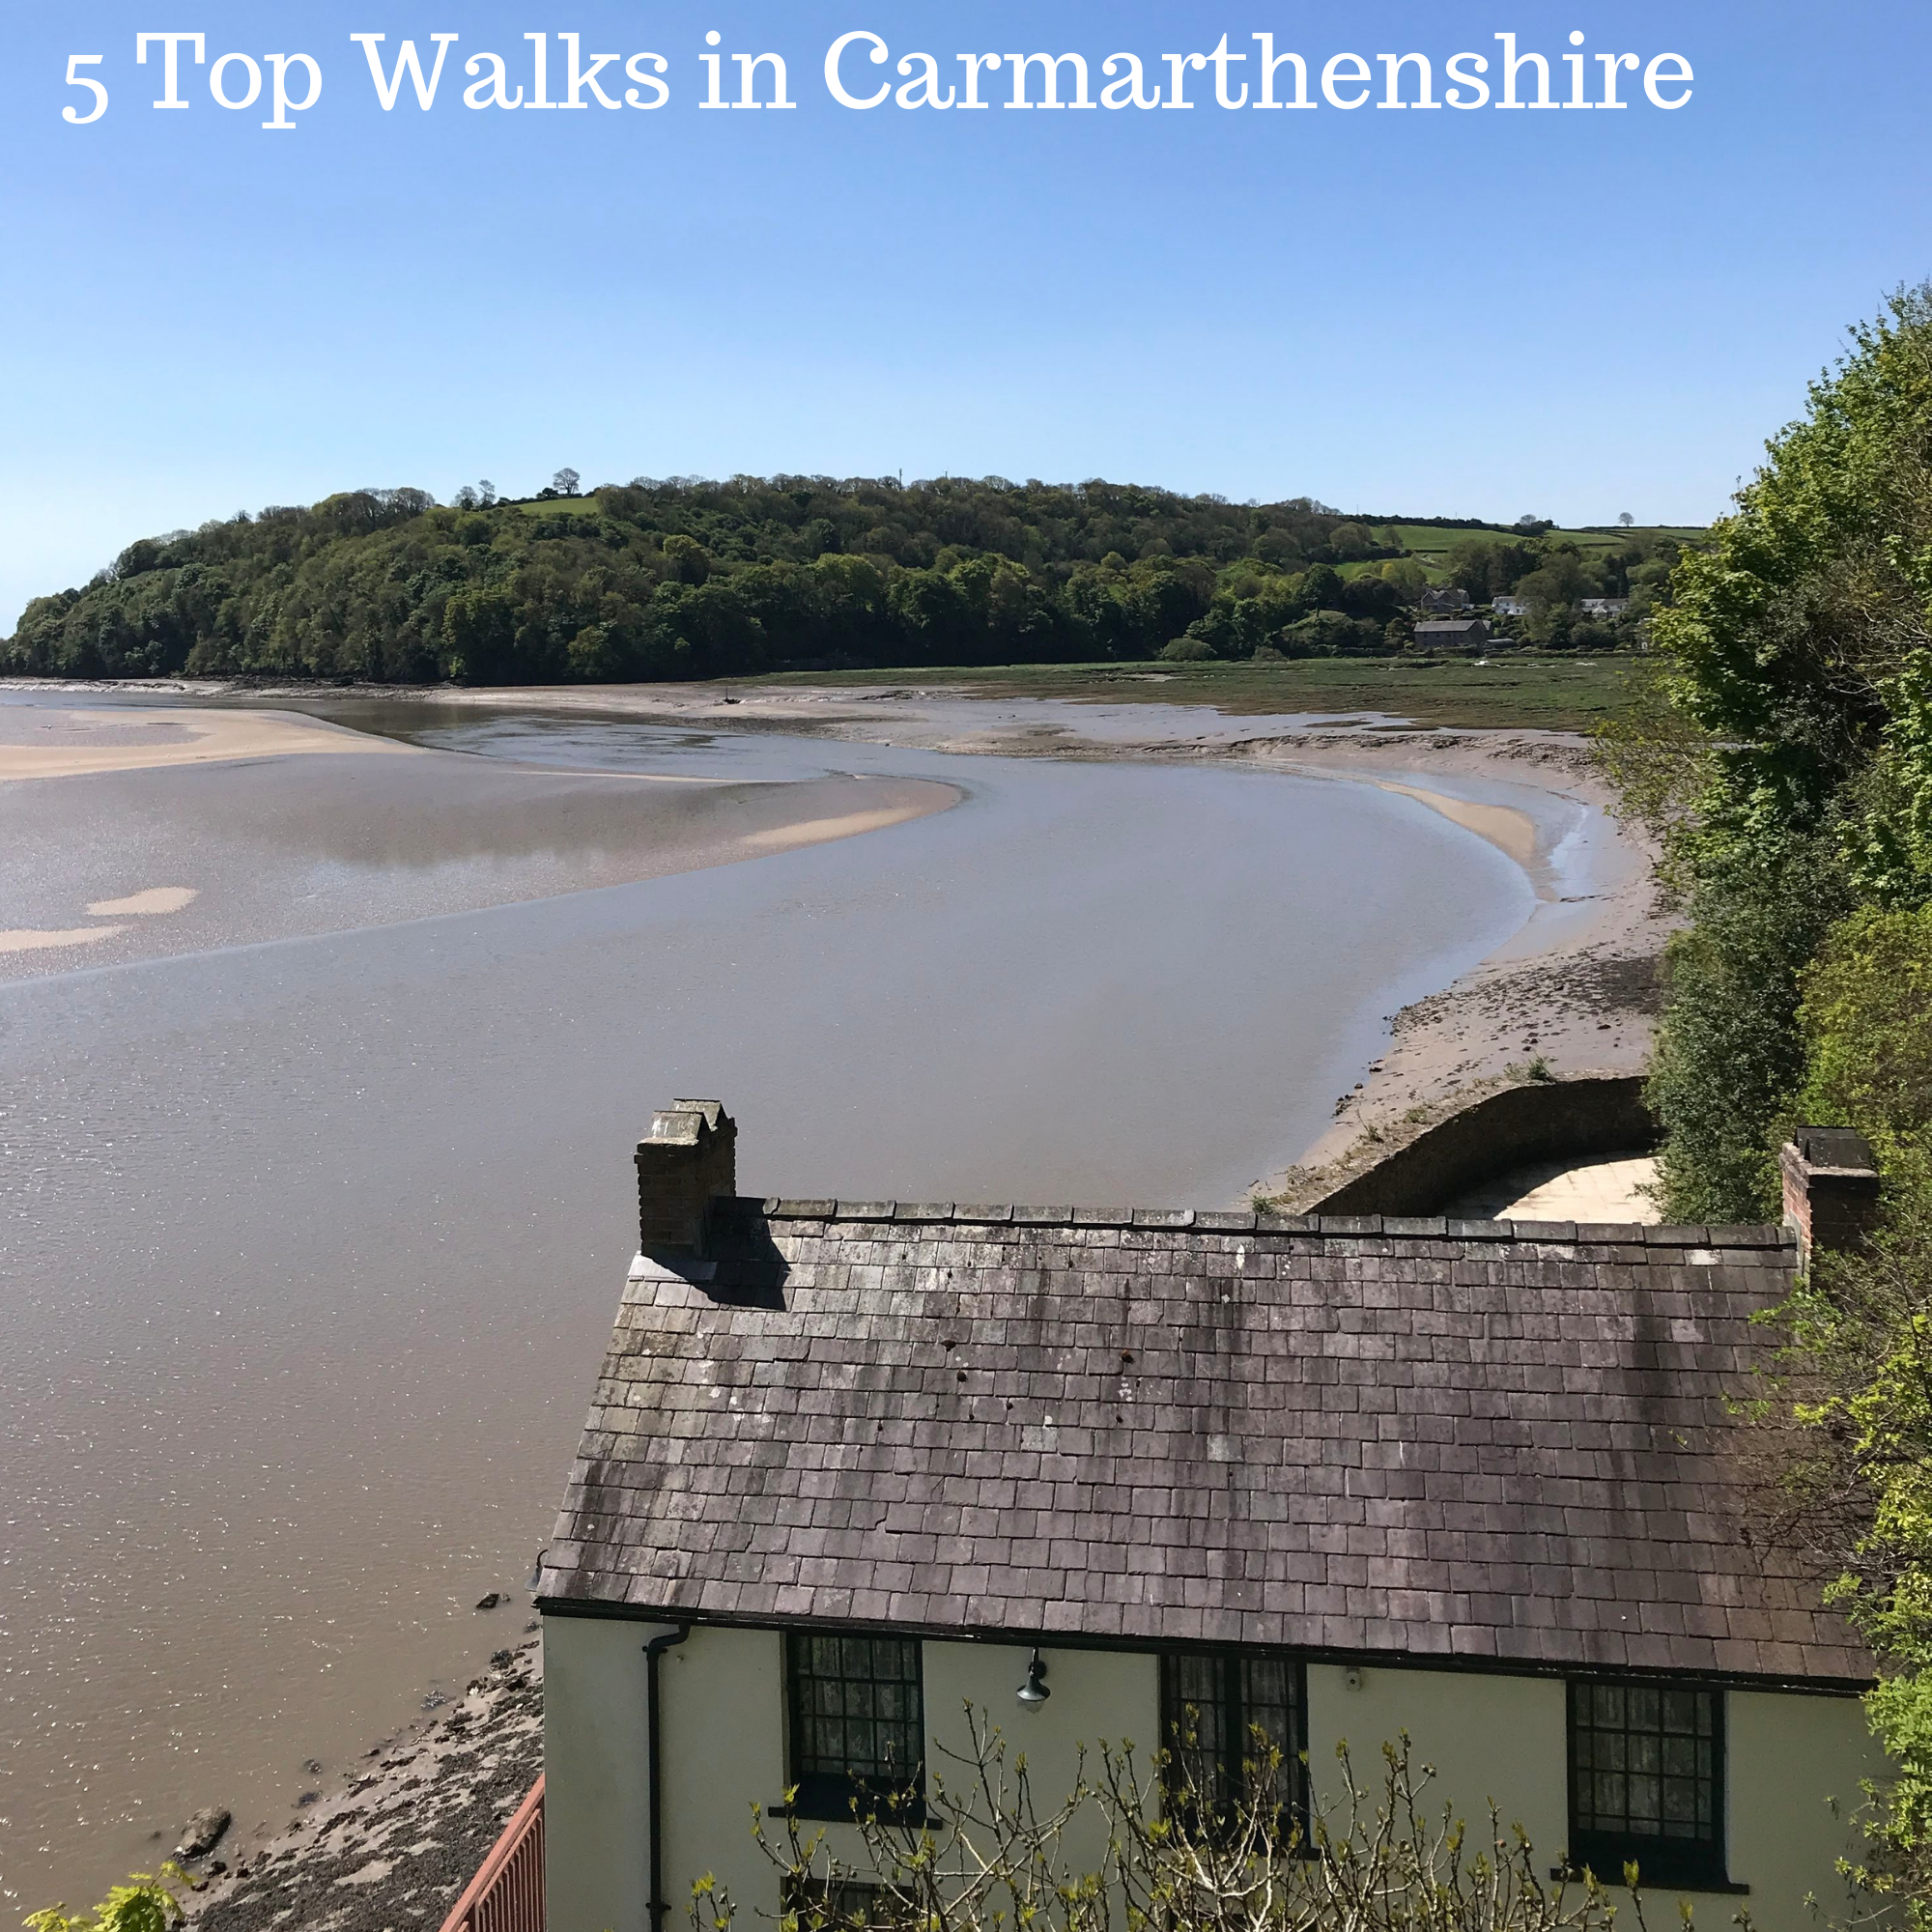 5 Top Walks in Carmarthenshire